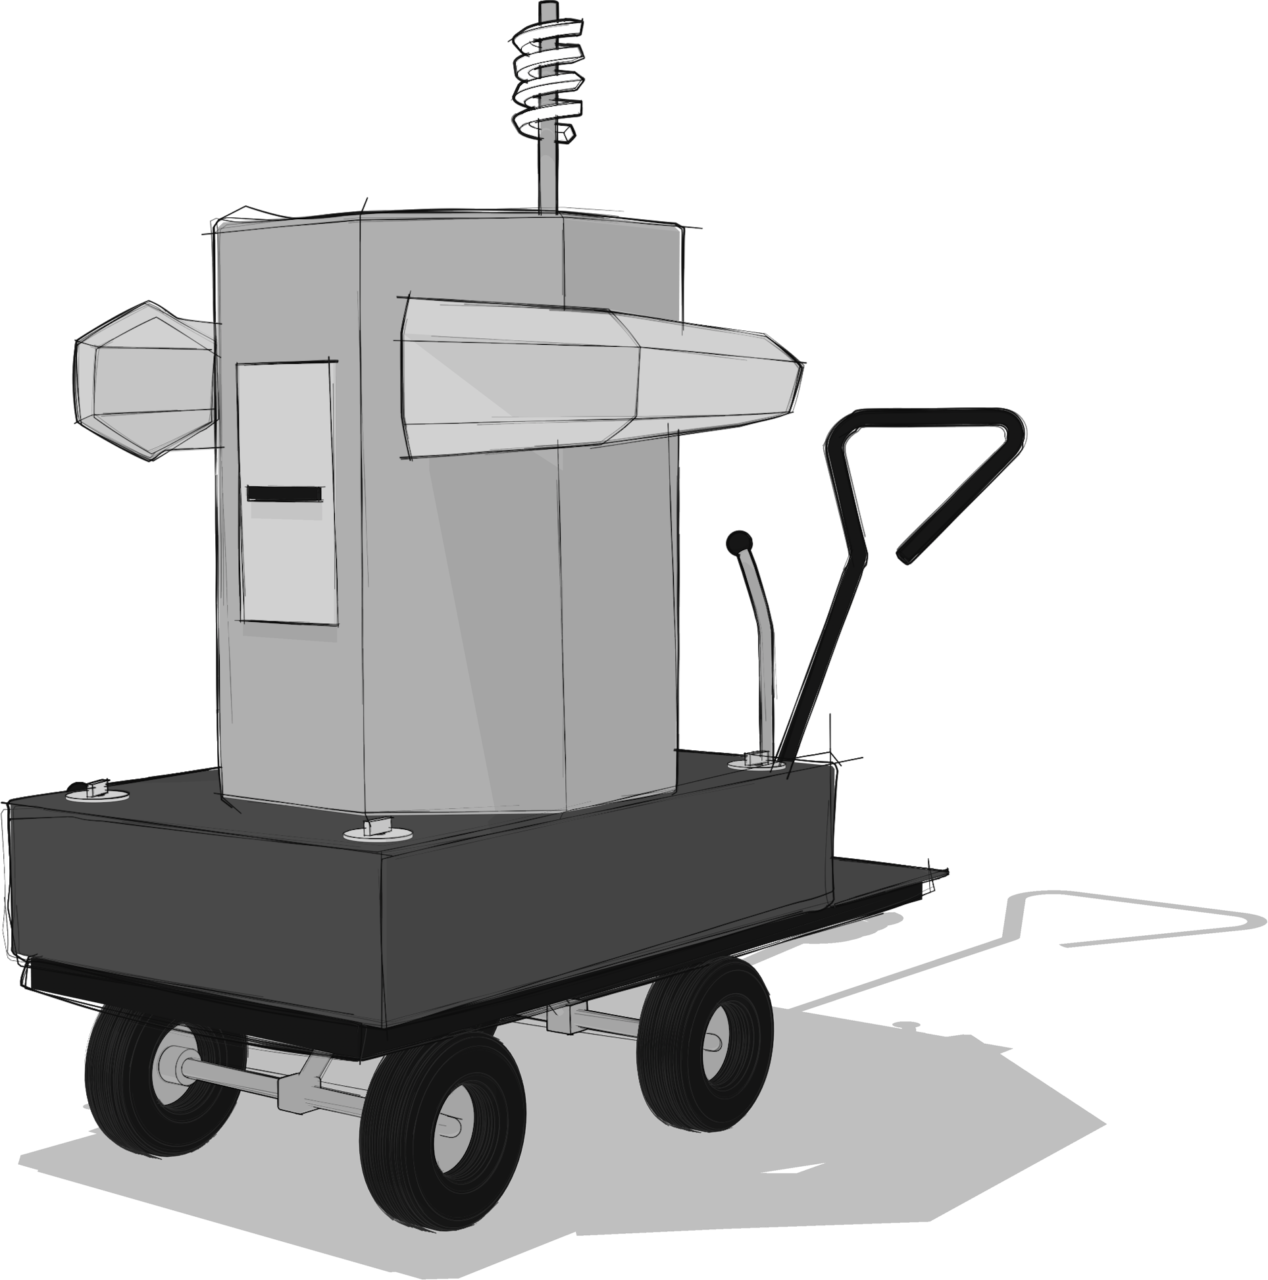 grey scale sketch of the Future Machine from the side angle